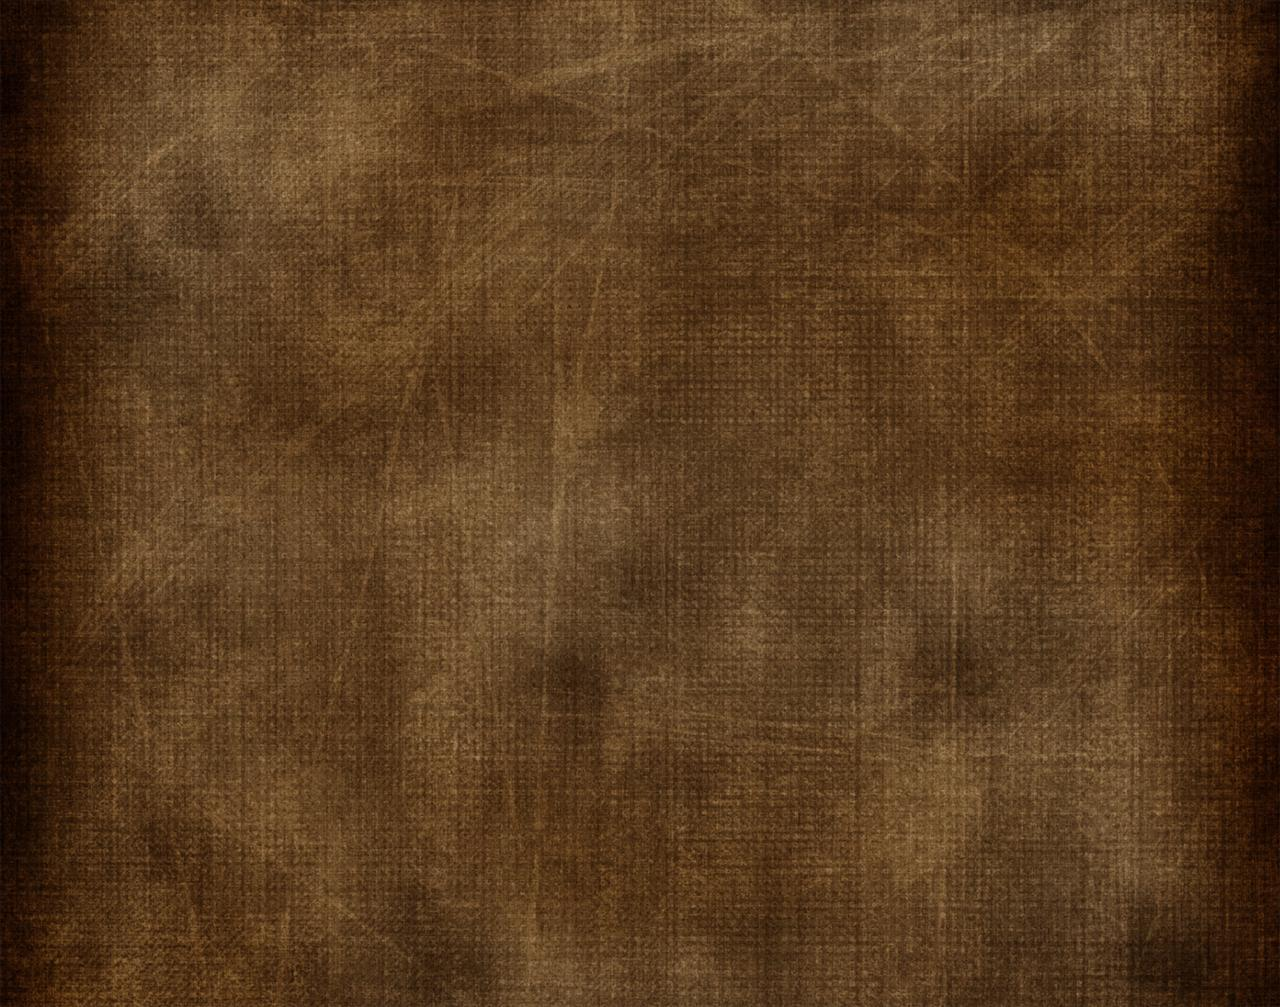 Rustic Related Keywords & Suggestions Rustic Wallpaper - Brown Rustic Wallpaper Texture , HD Wallpaper & Backgrounds